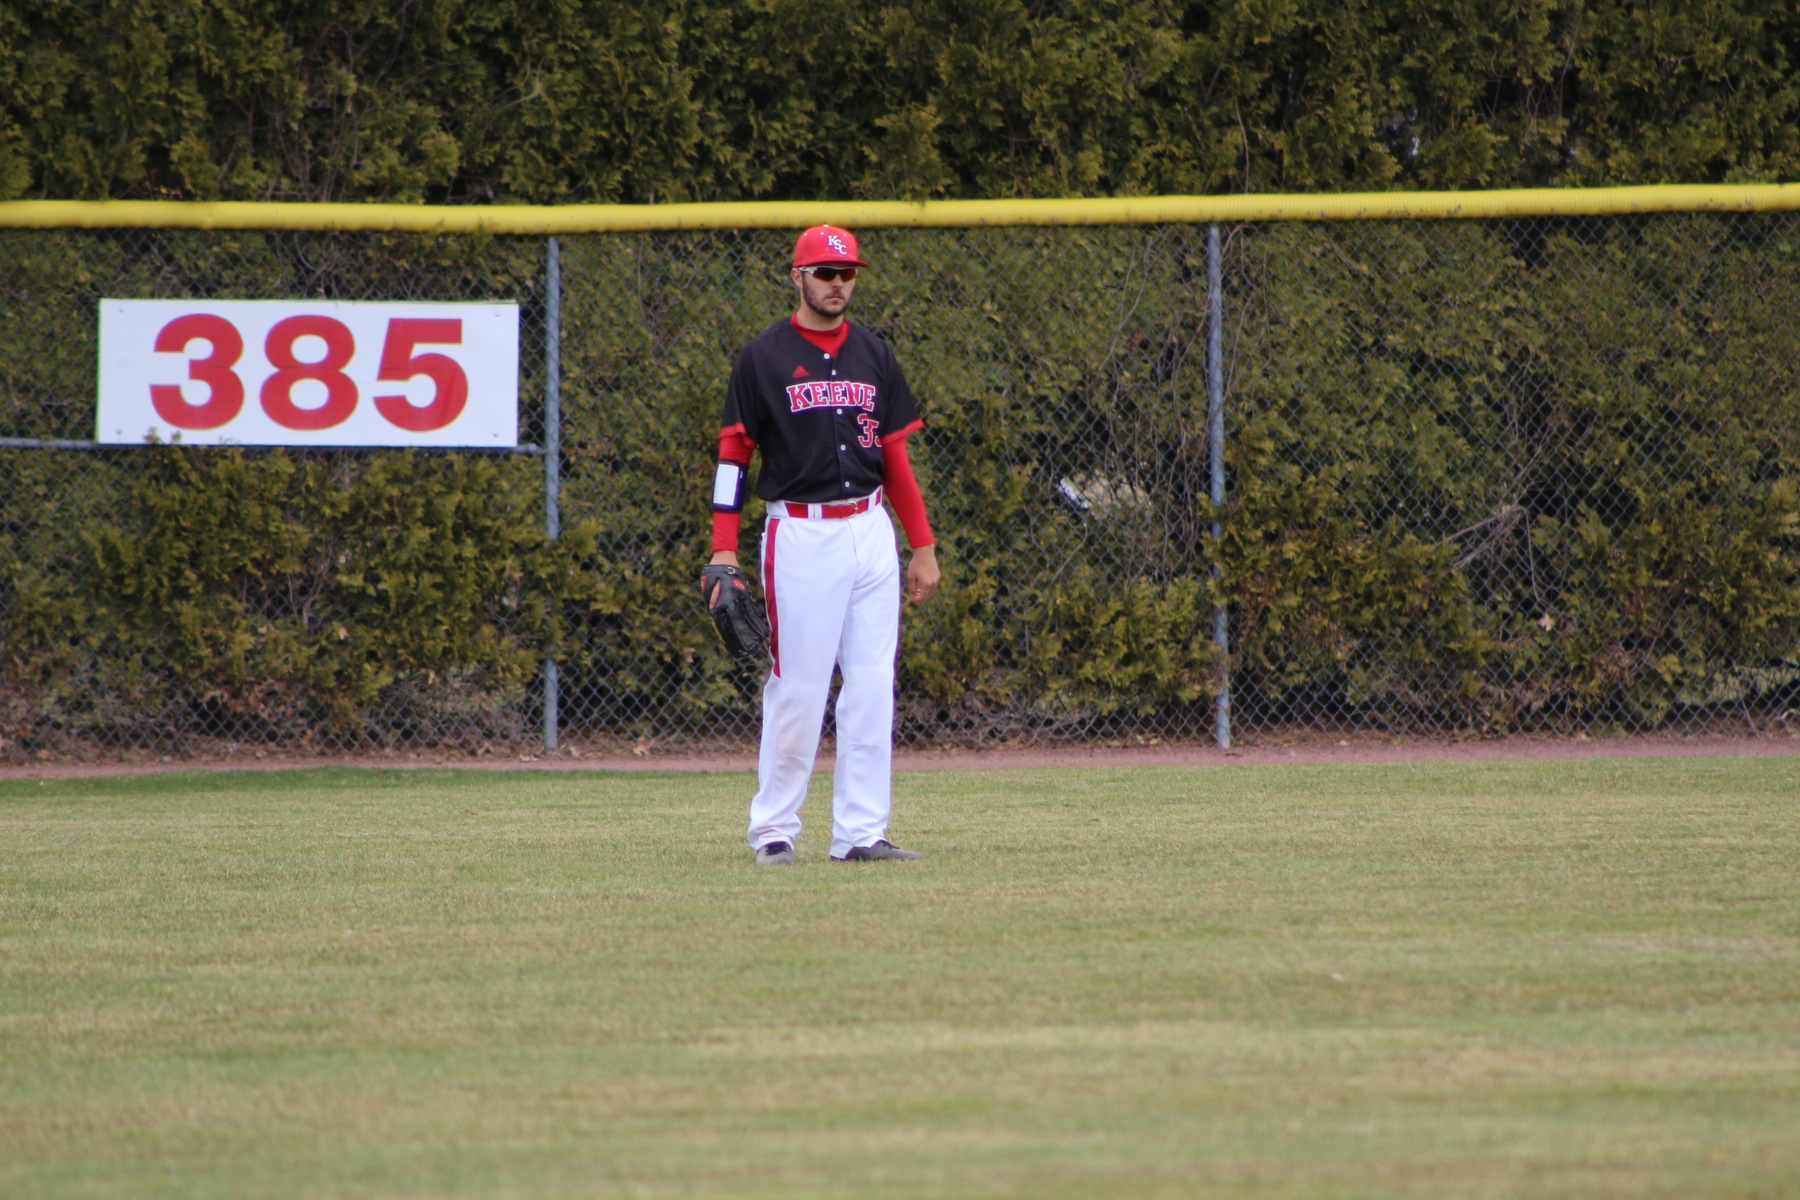 KSC Baseball Falls To Plymouth State In Wild Affair